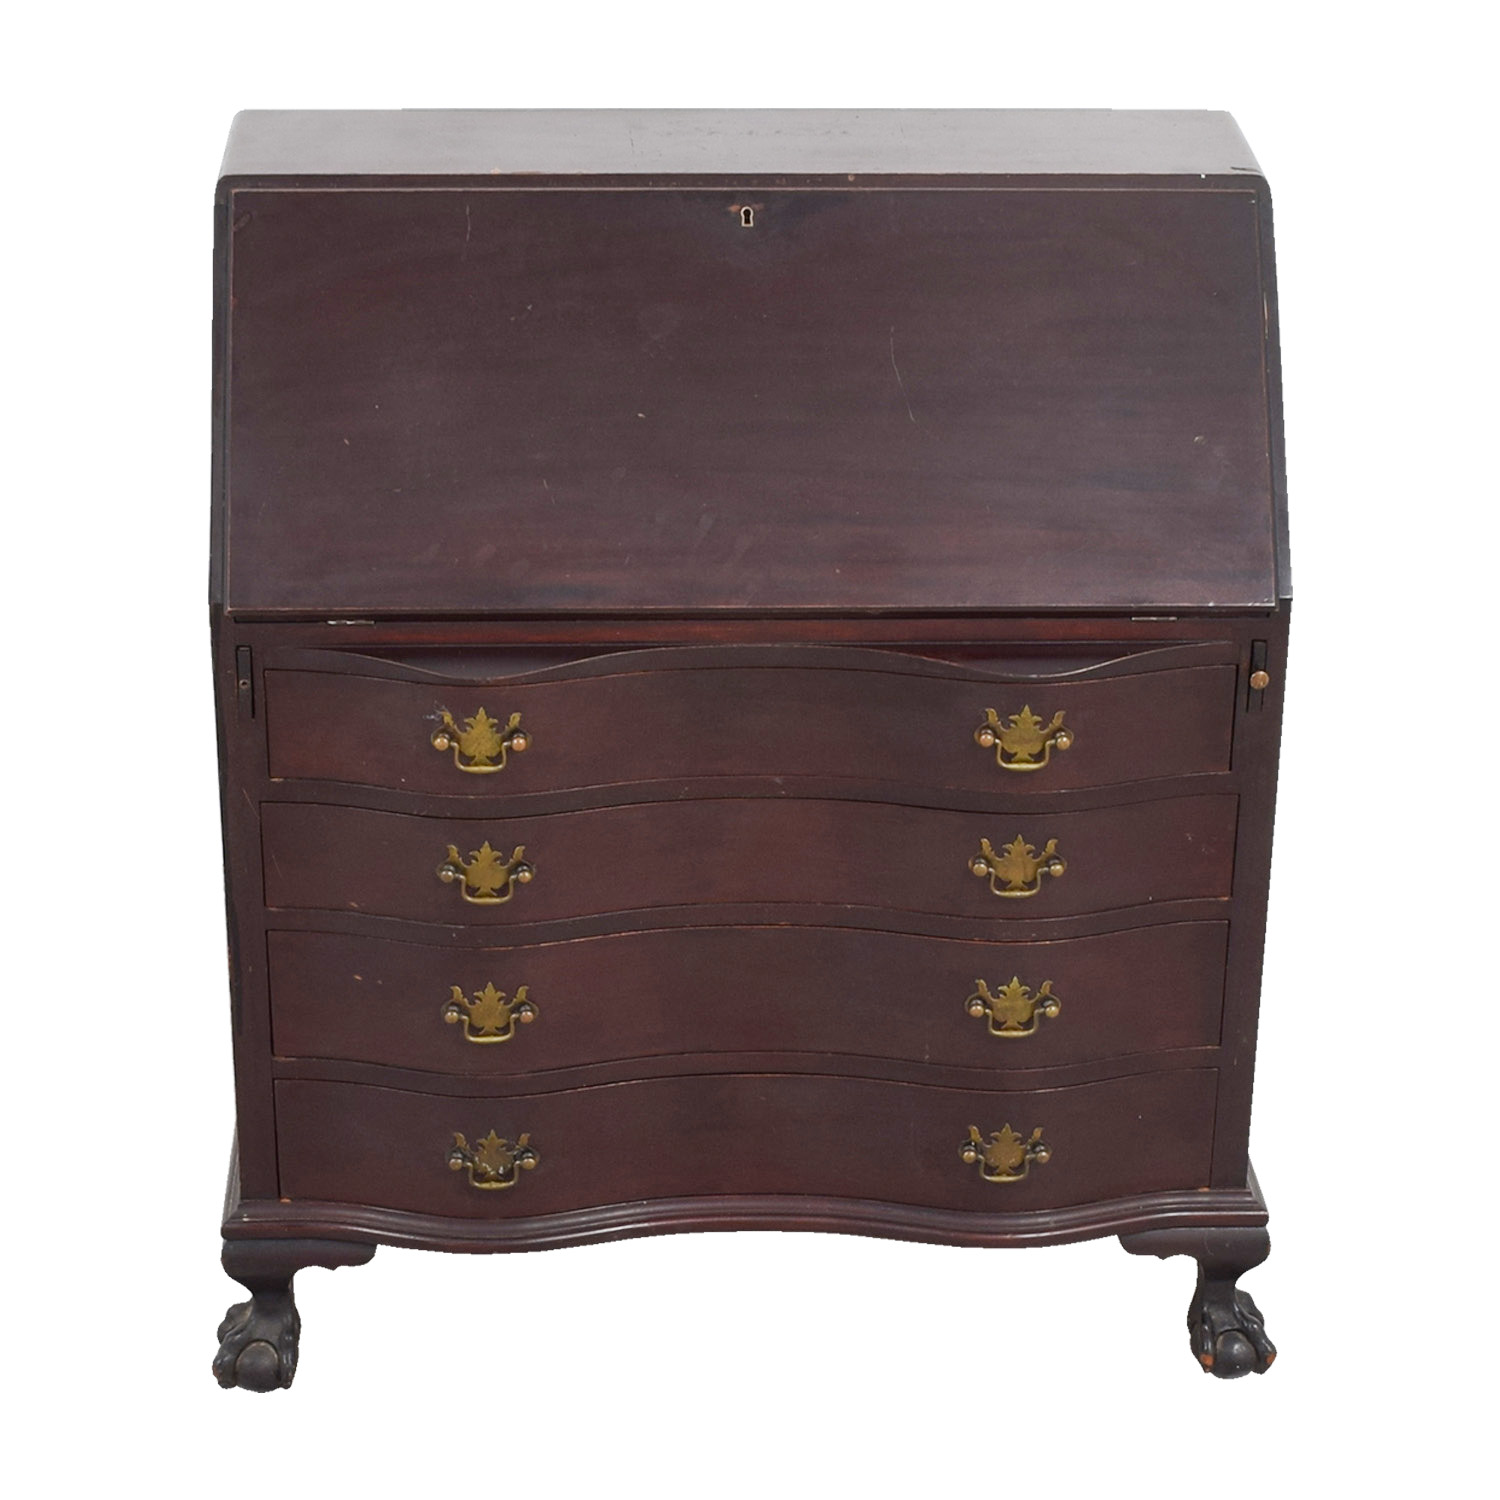 ... shop Furniture Masters Furniture Masters Antique Secretary Desk online  ... - 90% OFF - Furniture Masters Furniture Masters Antique Secretary Desk